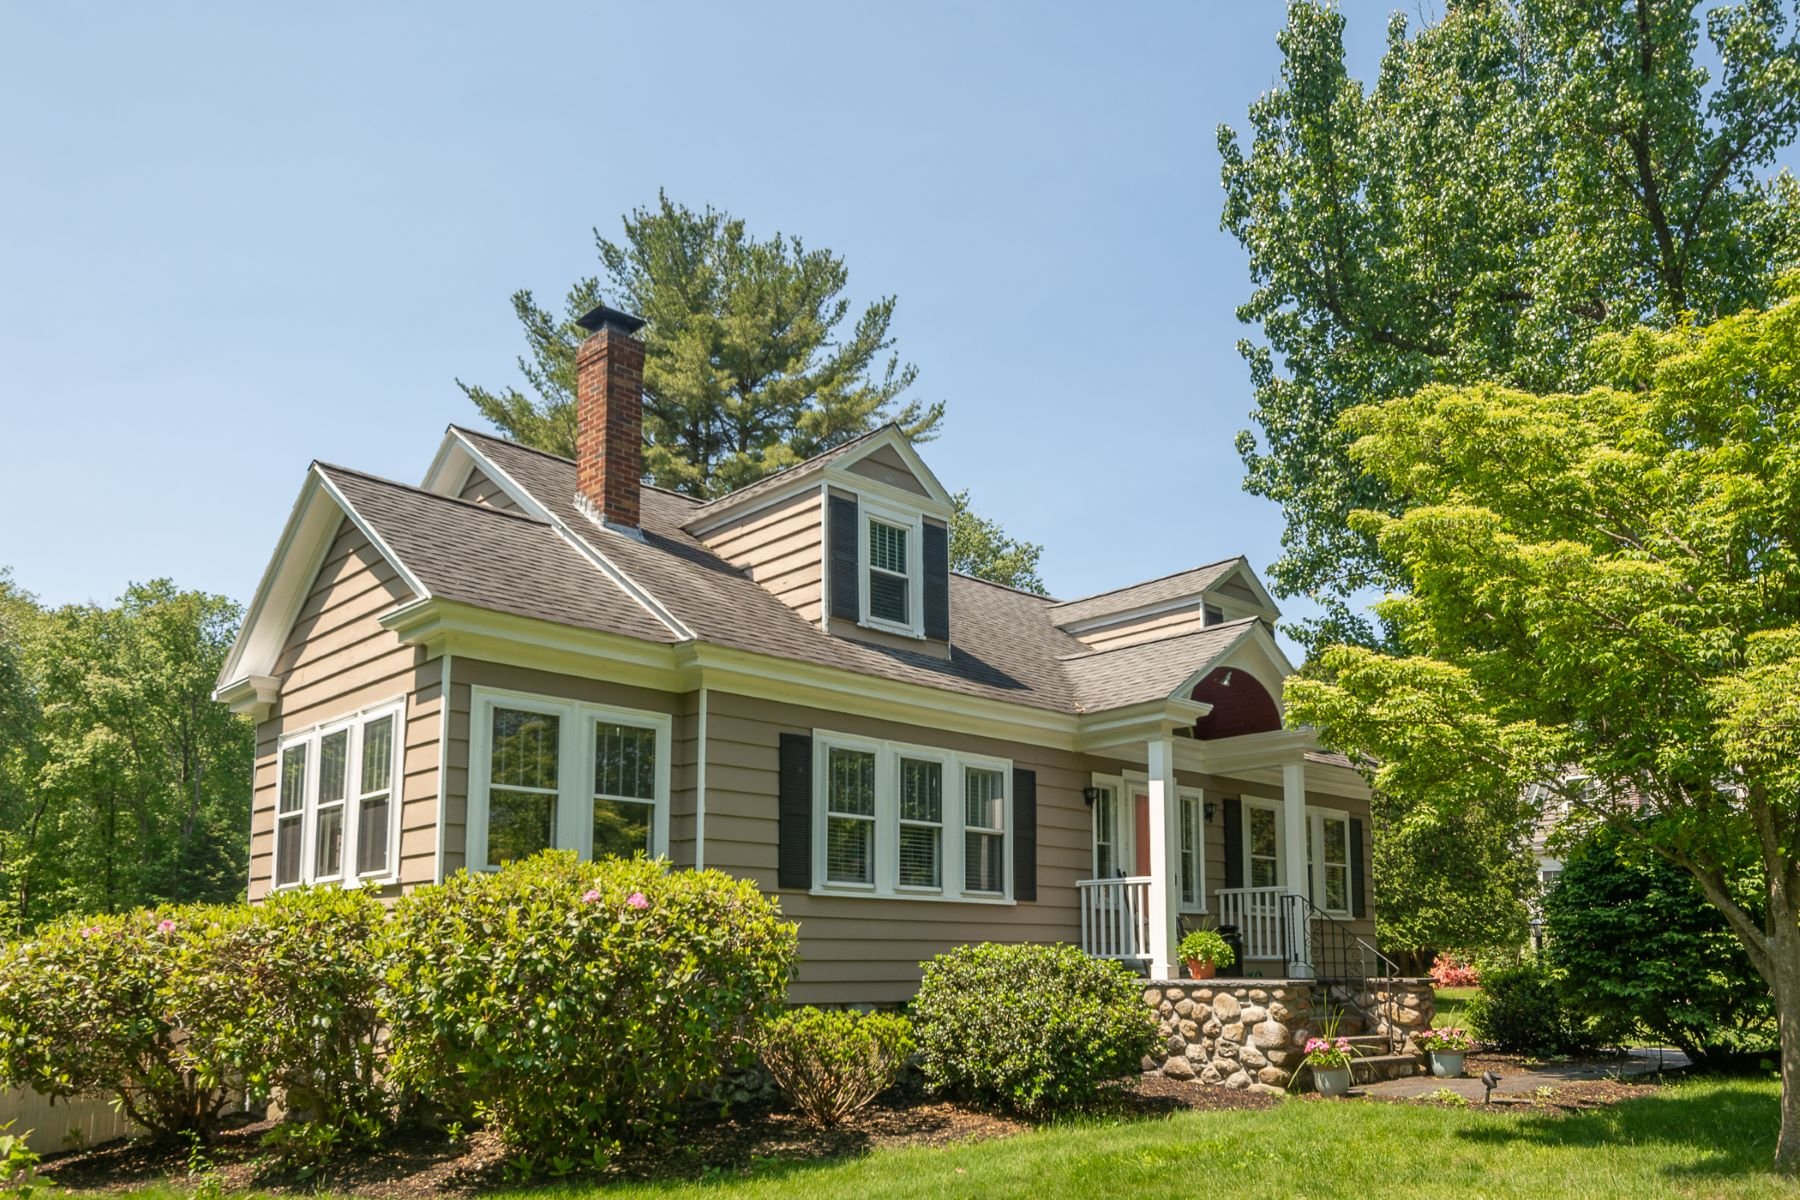 Single Family Homes for Sale at 54 Carlisle Road Bedford, Massachusetts 01730 United States